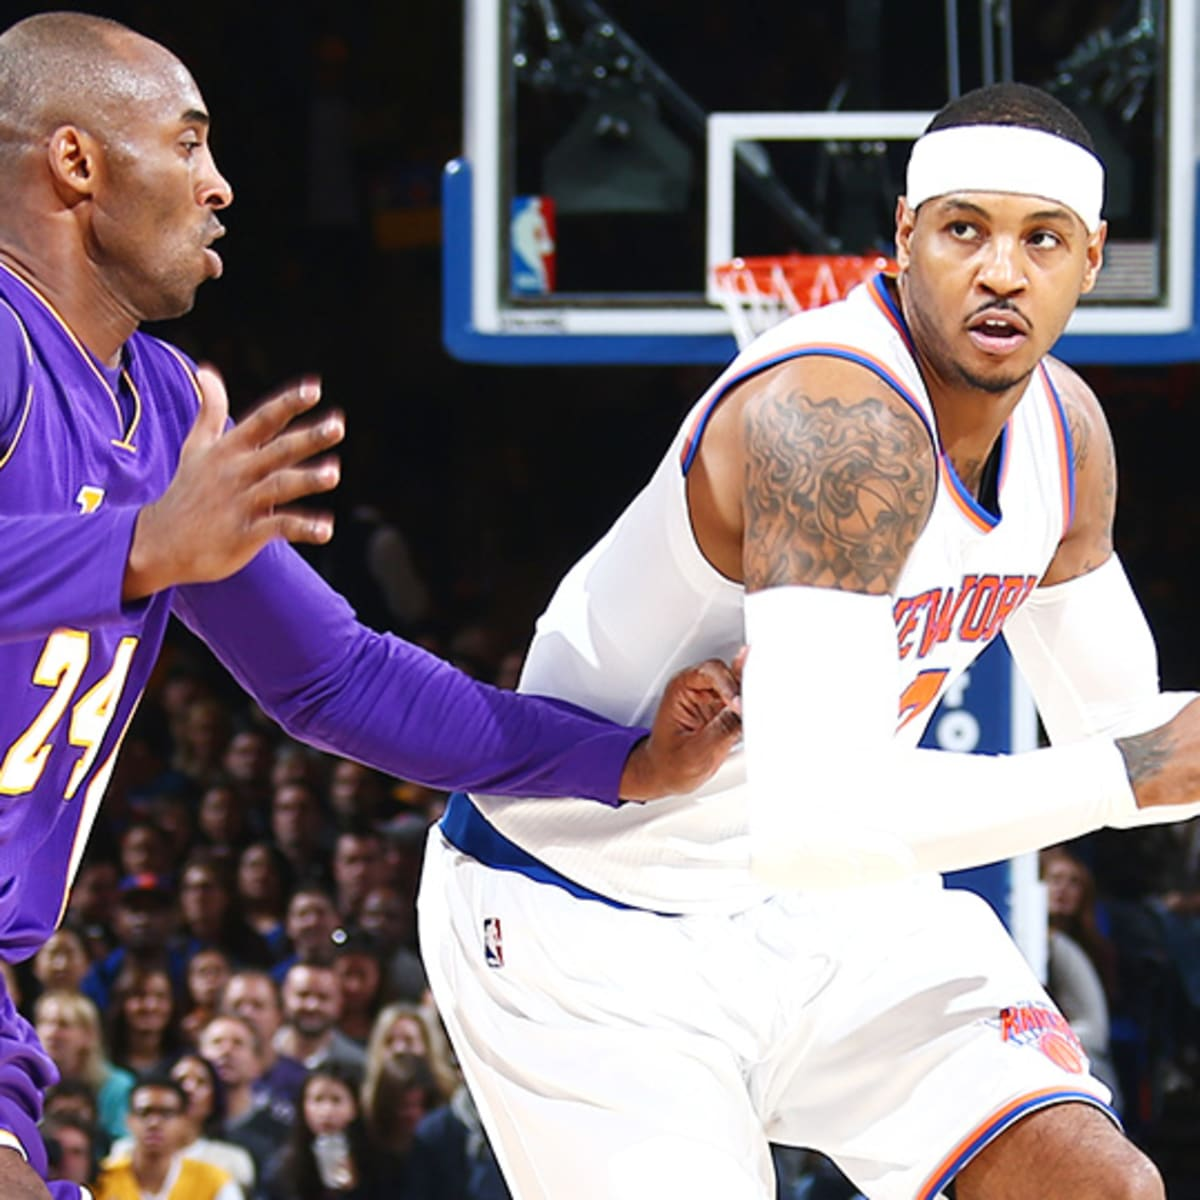 Knicks vs. Lakers: Kobe Bryant plays potentially last game at MSG ...